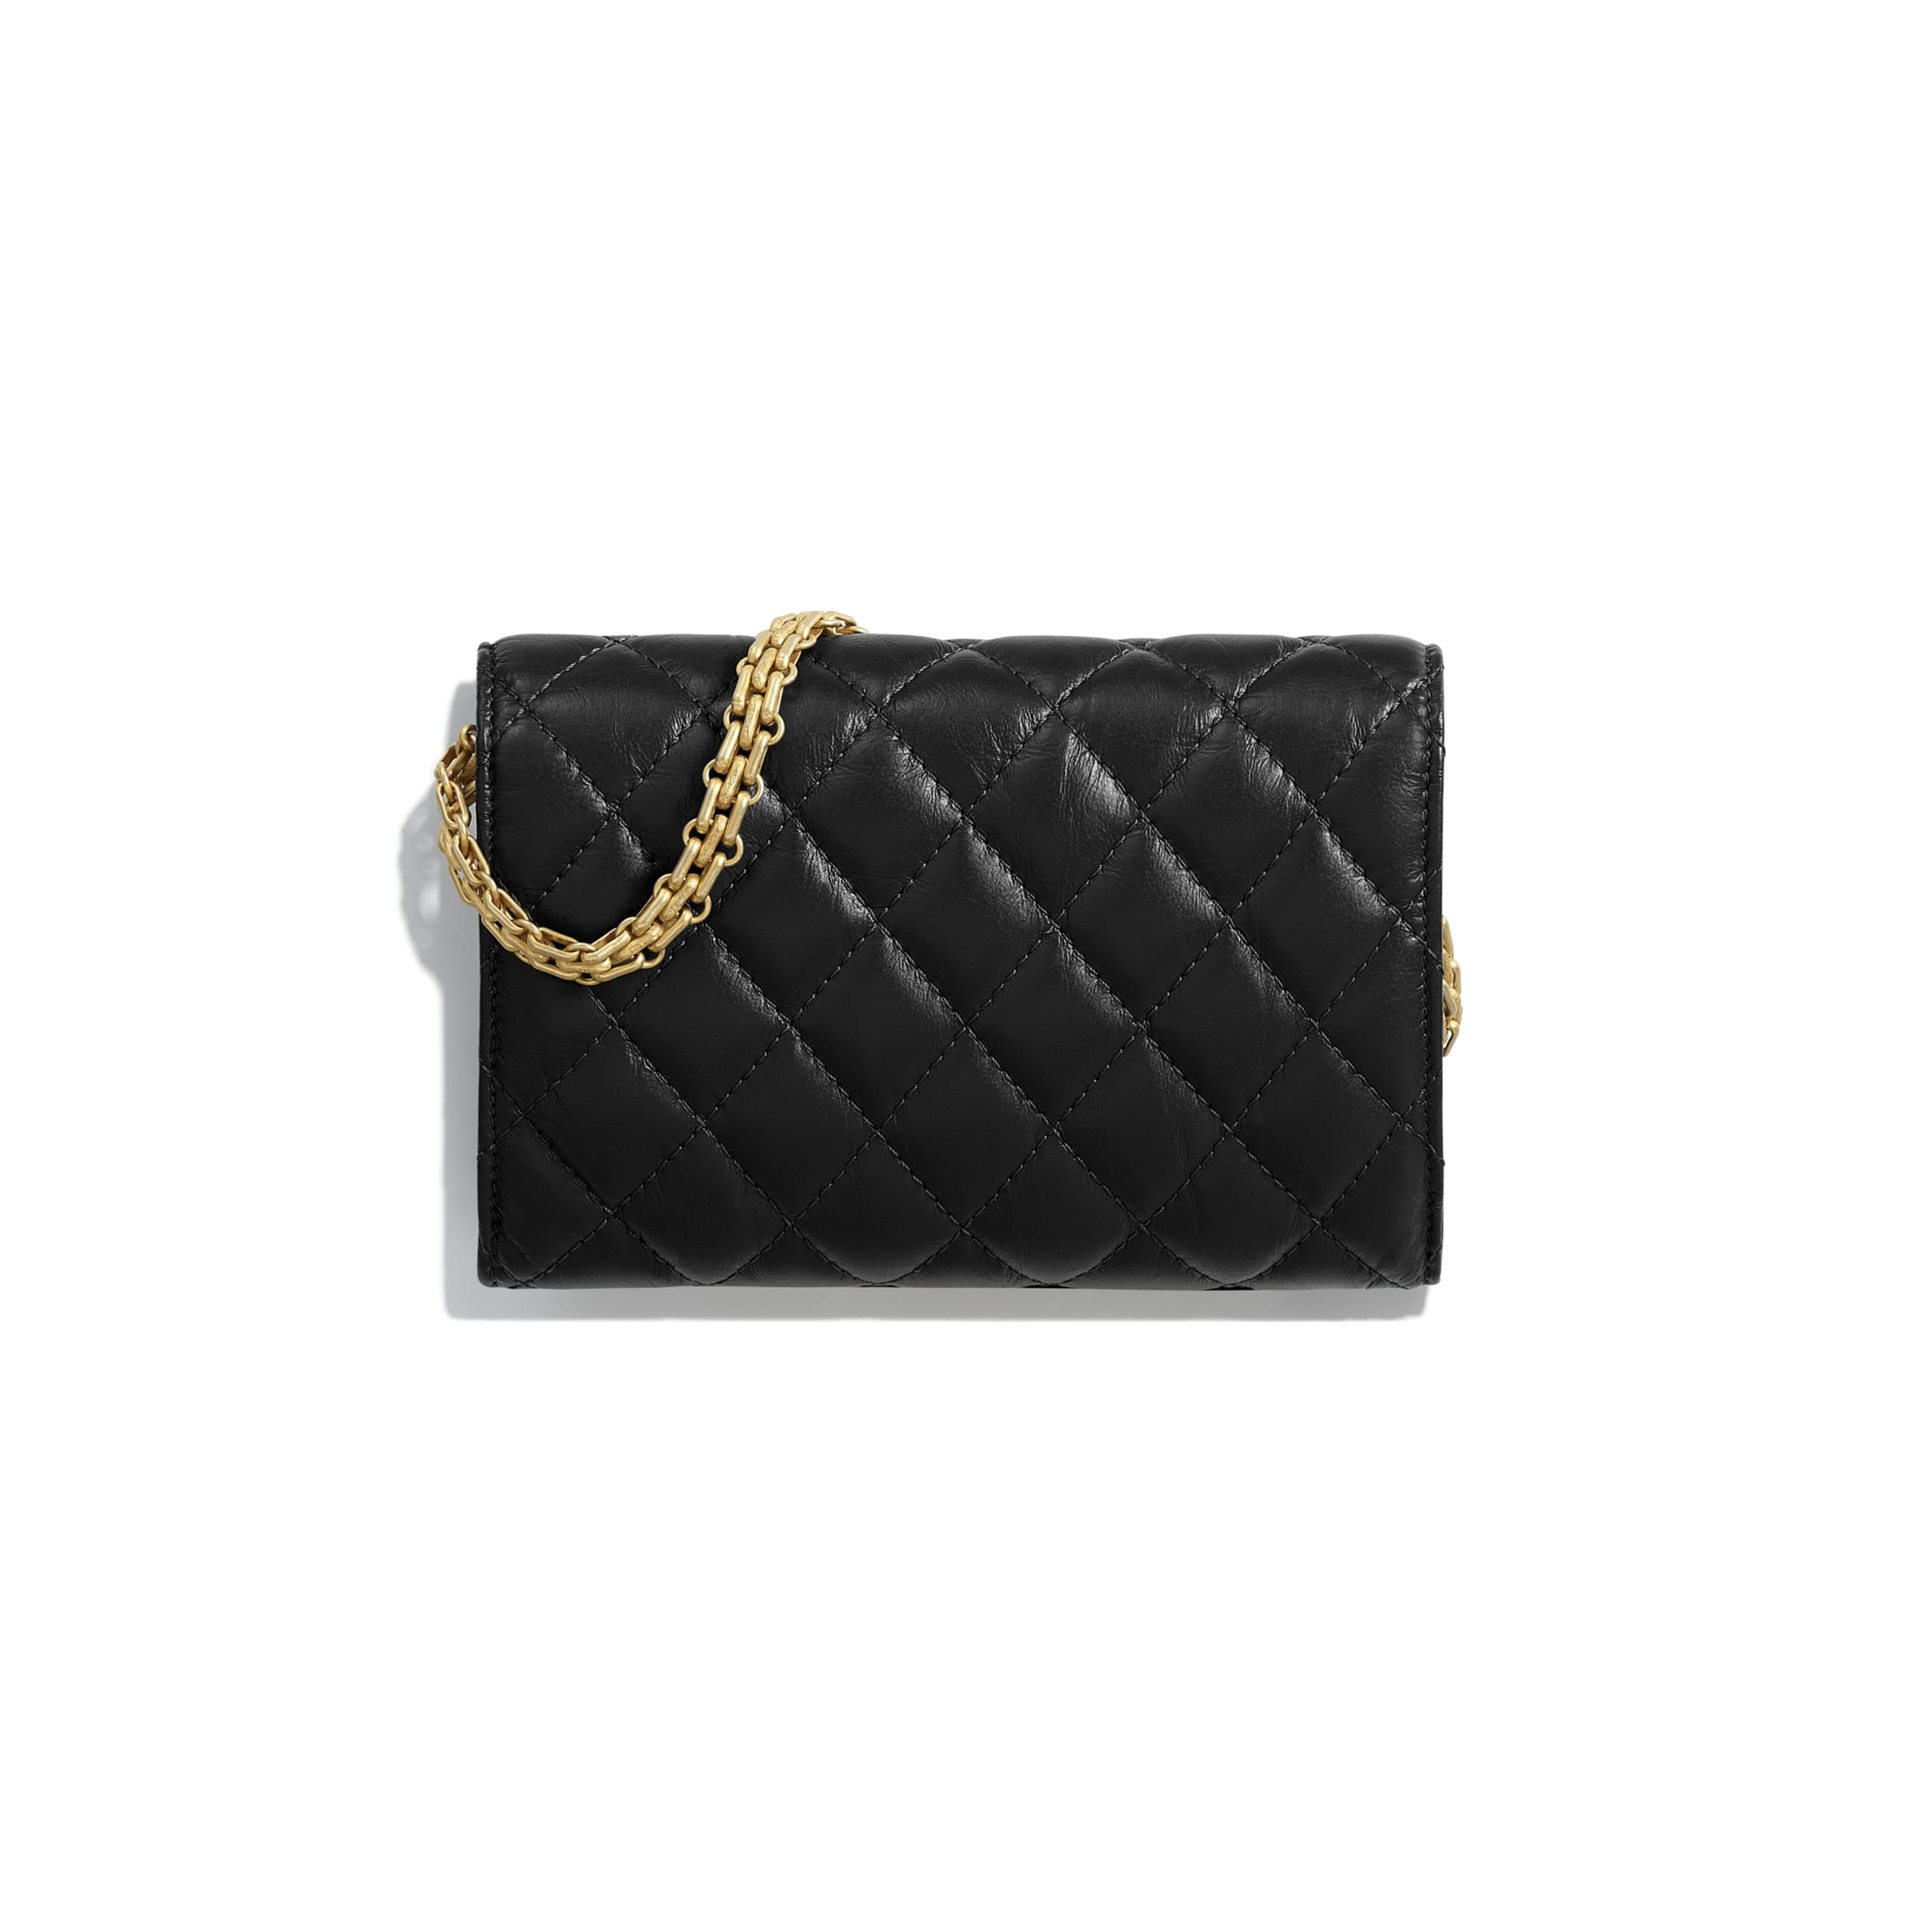 2.55 Clutch with Chain - Black - Aged Calfskin & Gold-Tone Metal - Alternative view - see standard sized version